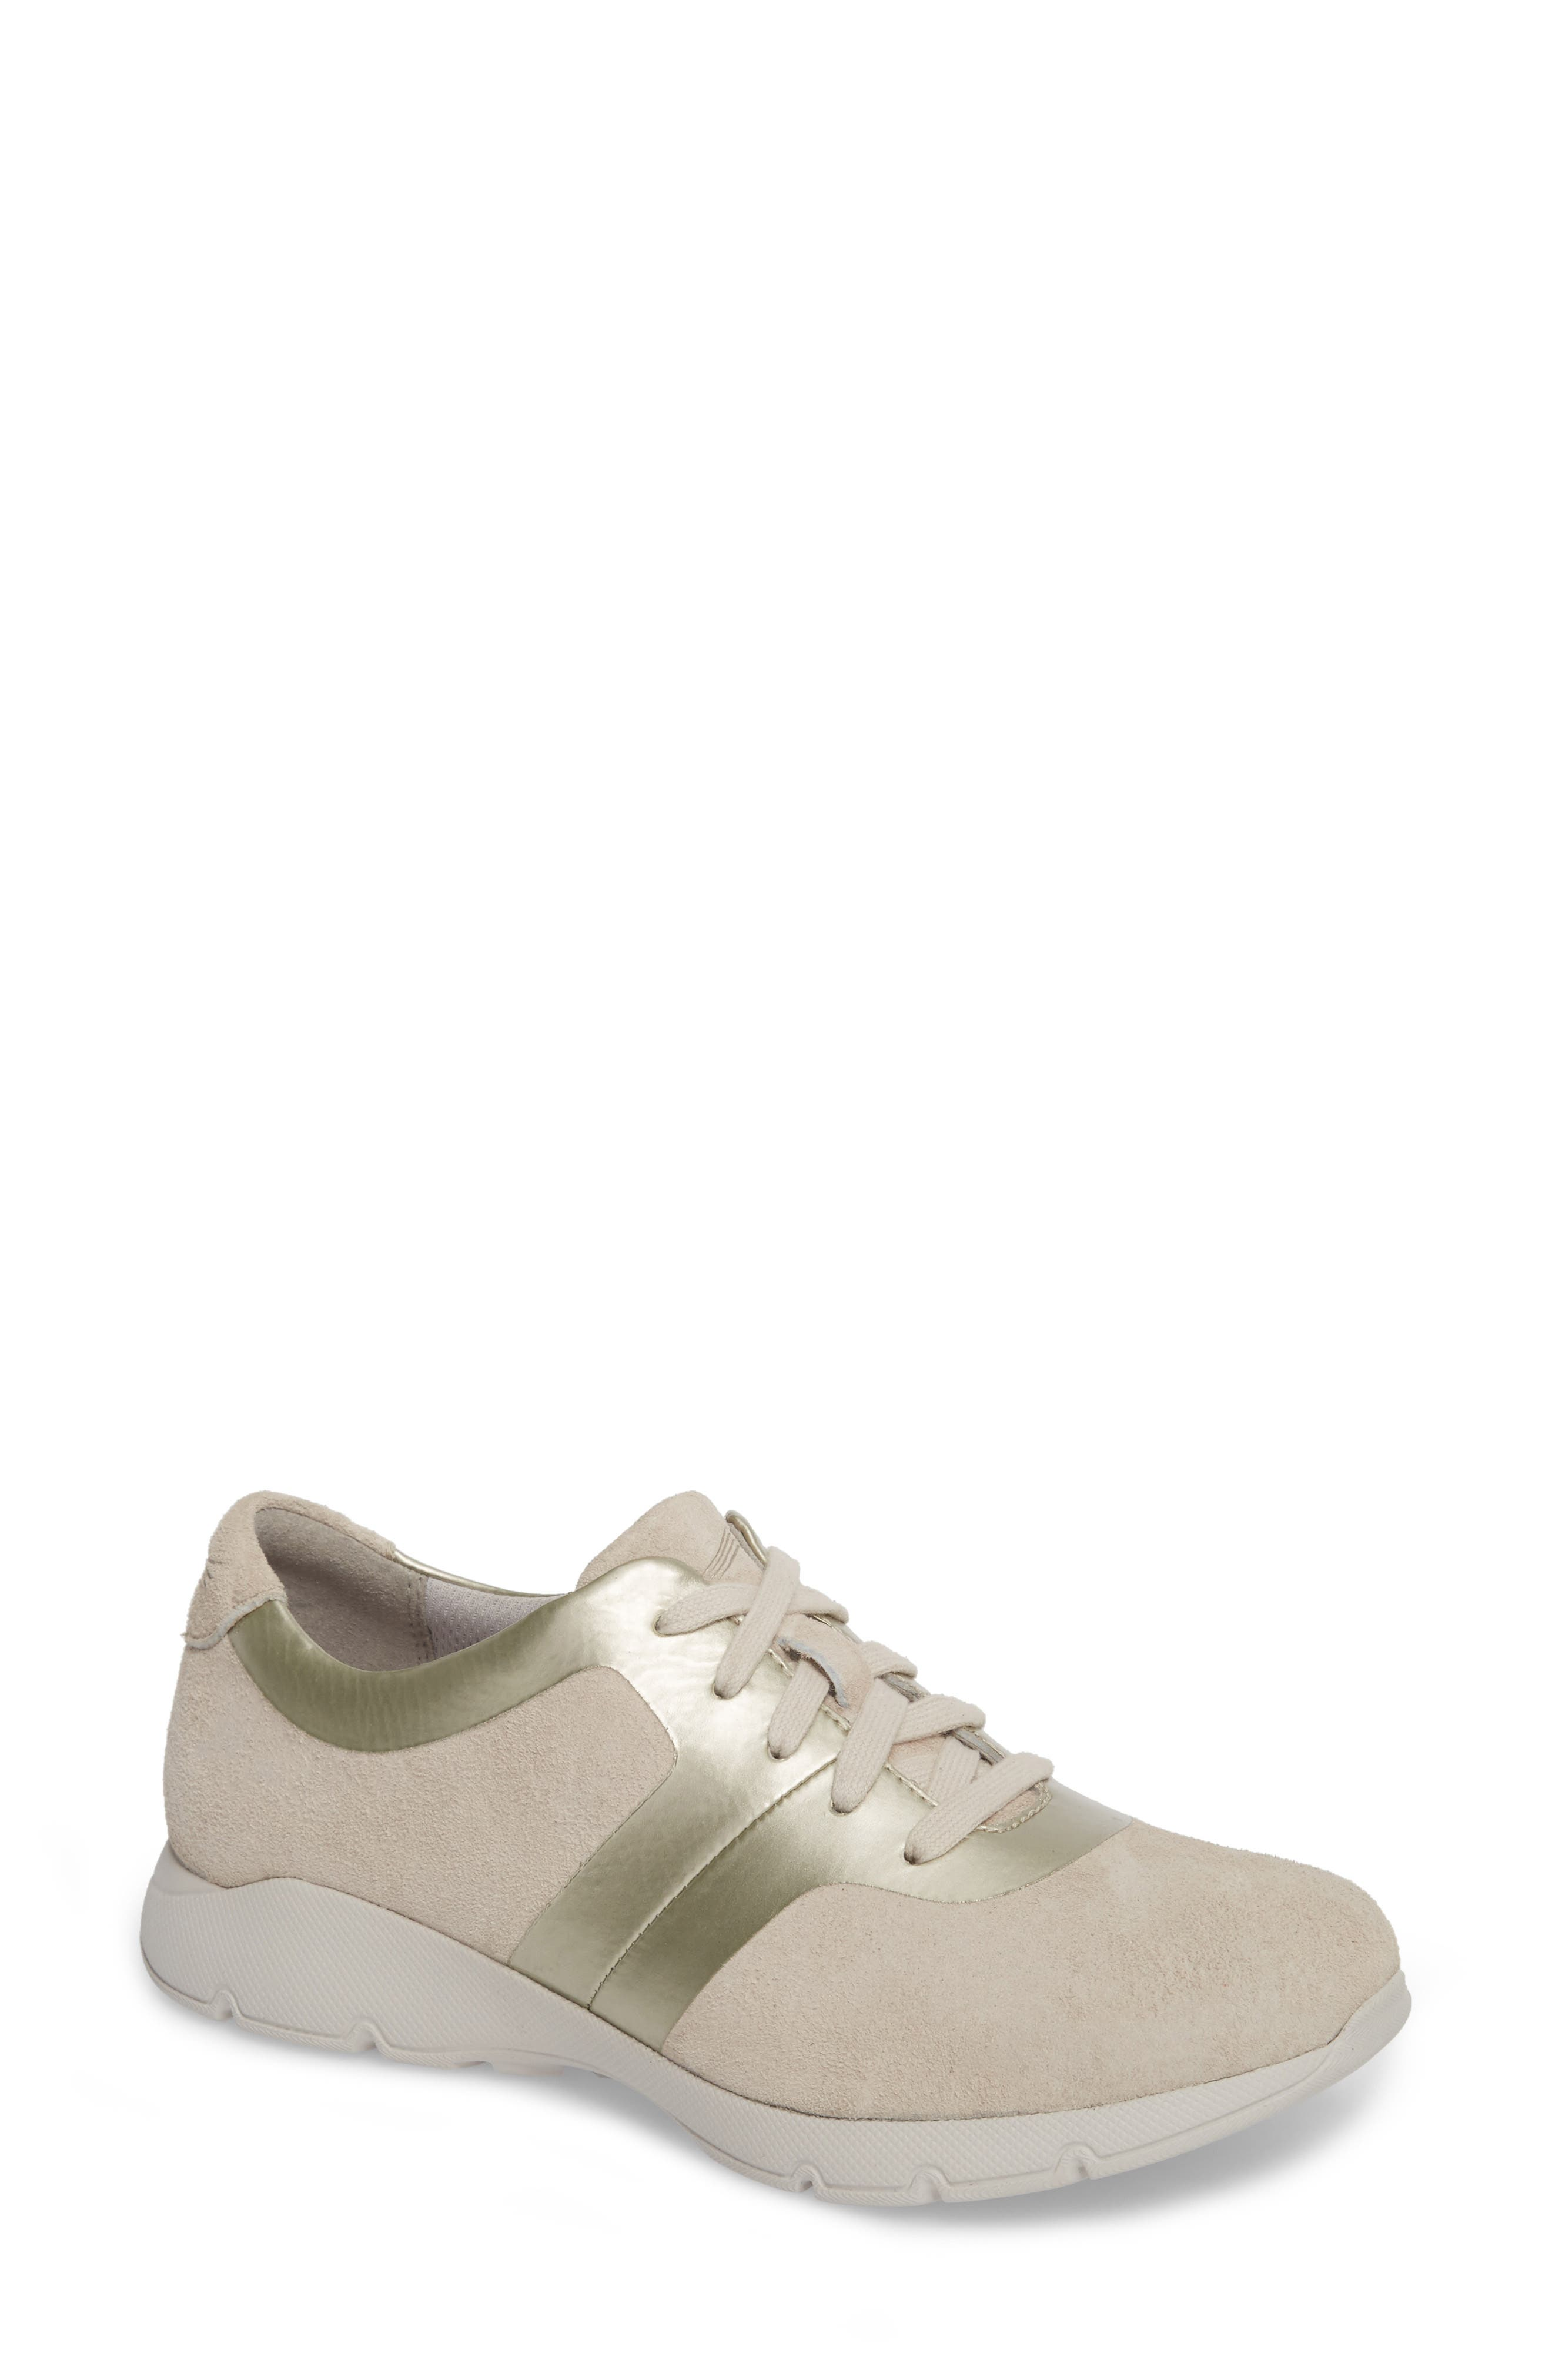 Andi Sneaker,                         Main,                         color, Ivory Leather